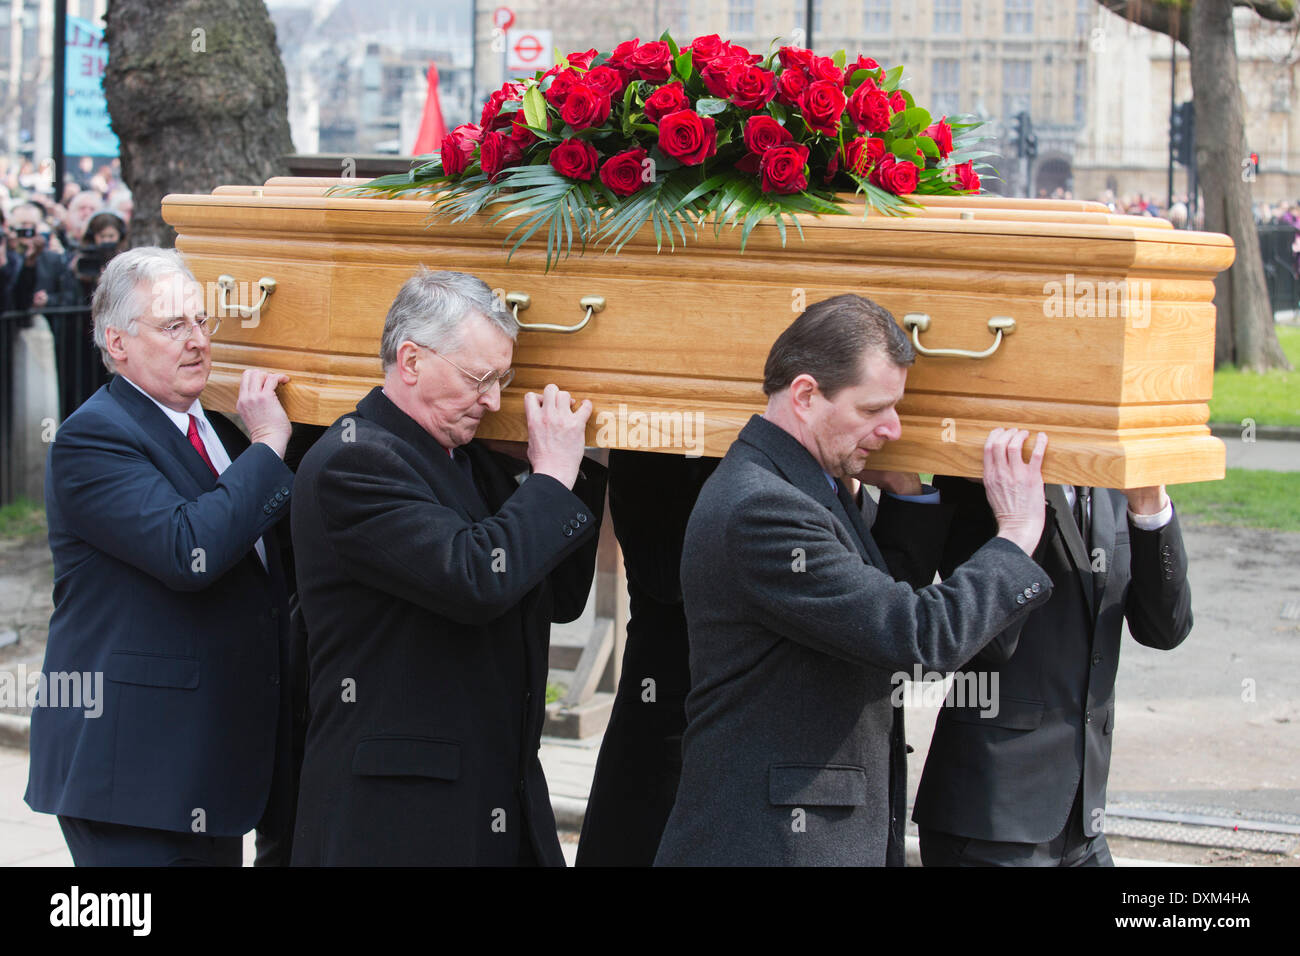 Carrying Coffin Stock Photos Carrying Coffin Stock Images Alamy